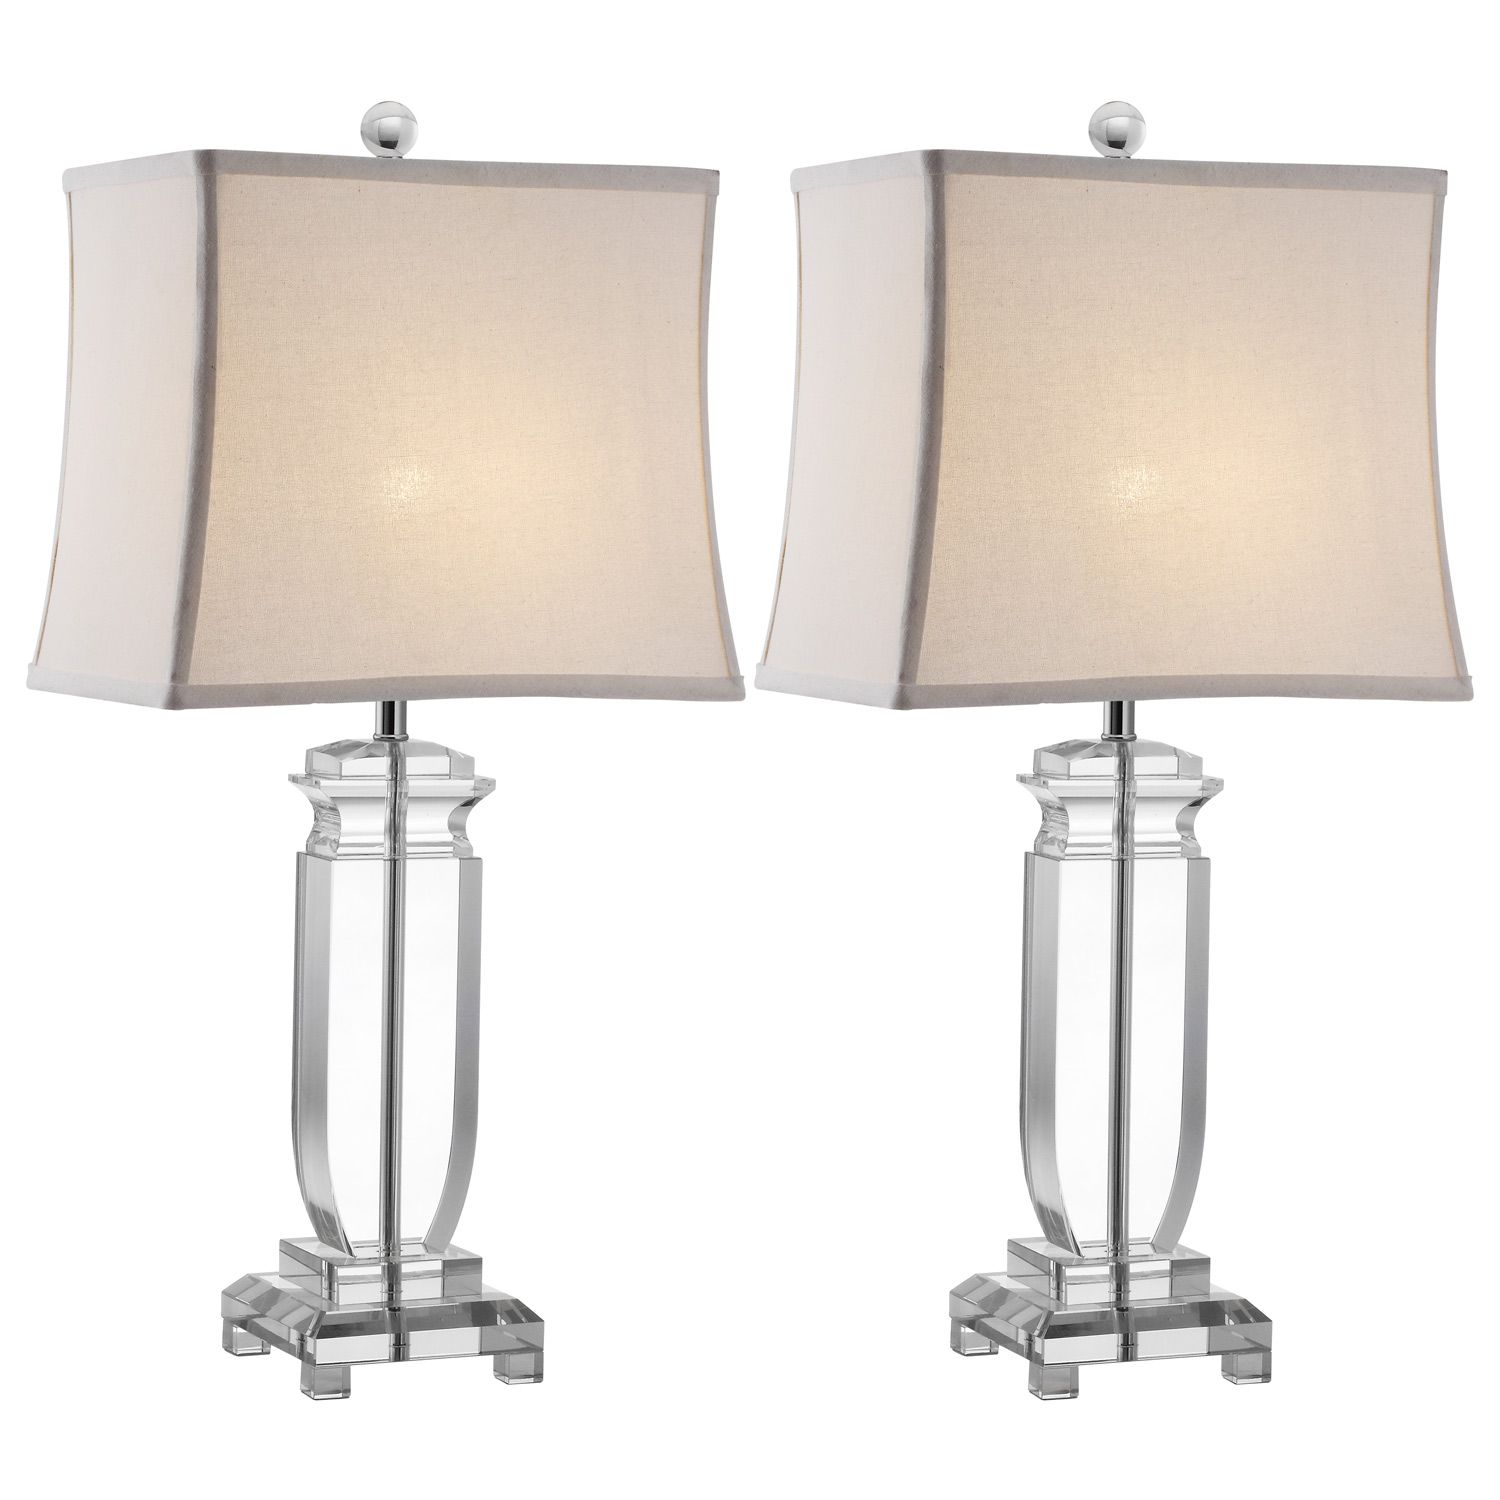 Olympia Clear Table Lamp Set of 2 @LaylaGrayce